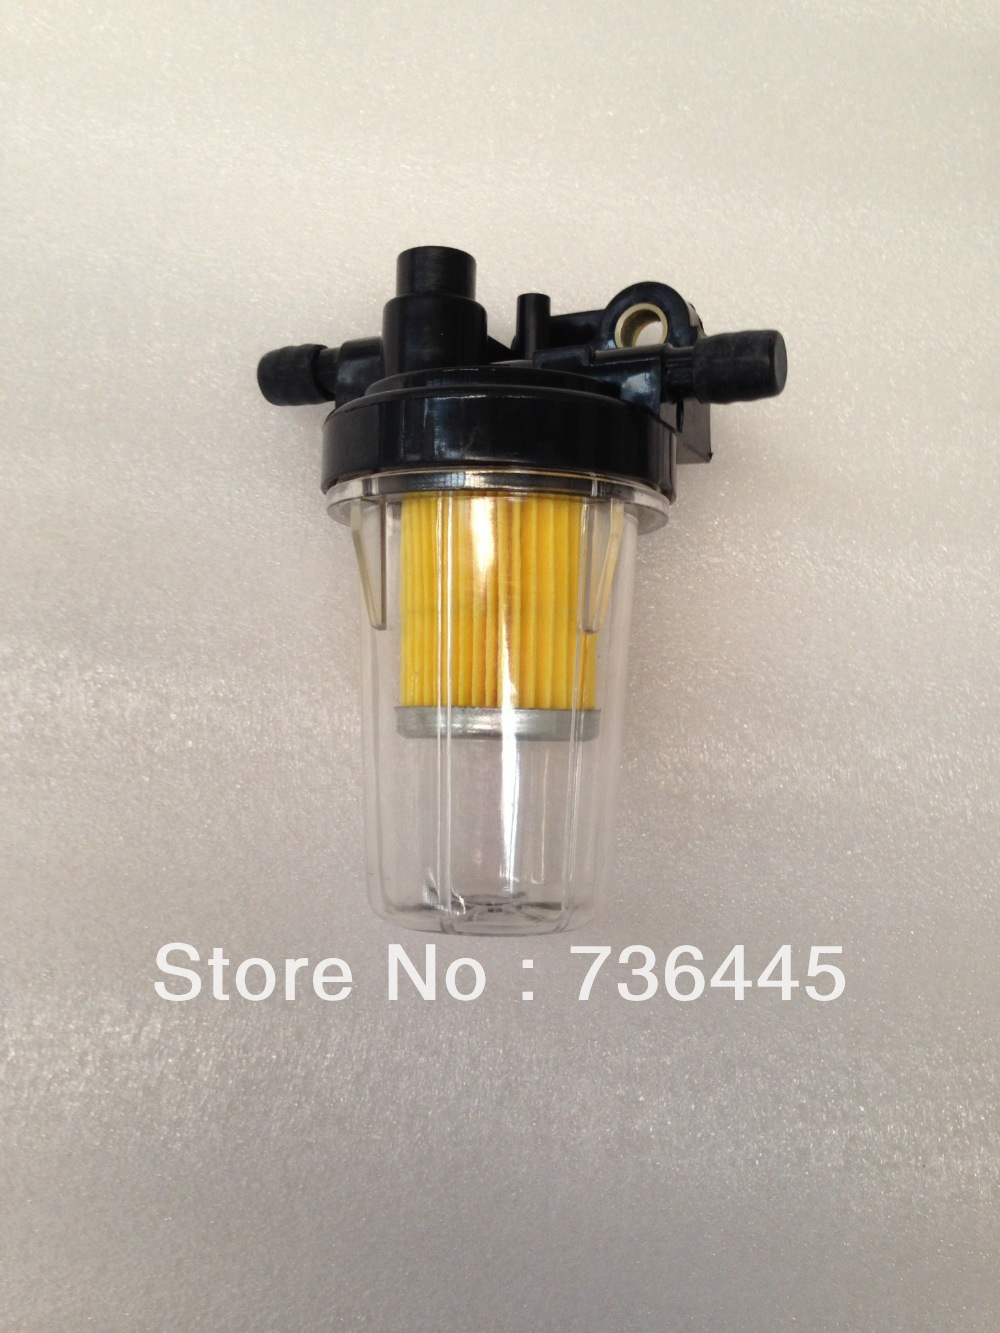 DF tractor parts dongfeng small diesel engine fuel filter for DF204G3 3M78  on Aliexpress.com | Alibaba Group